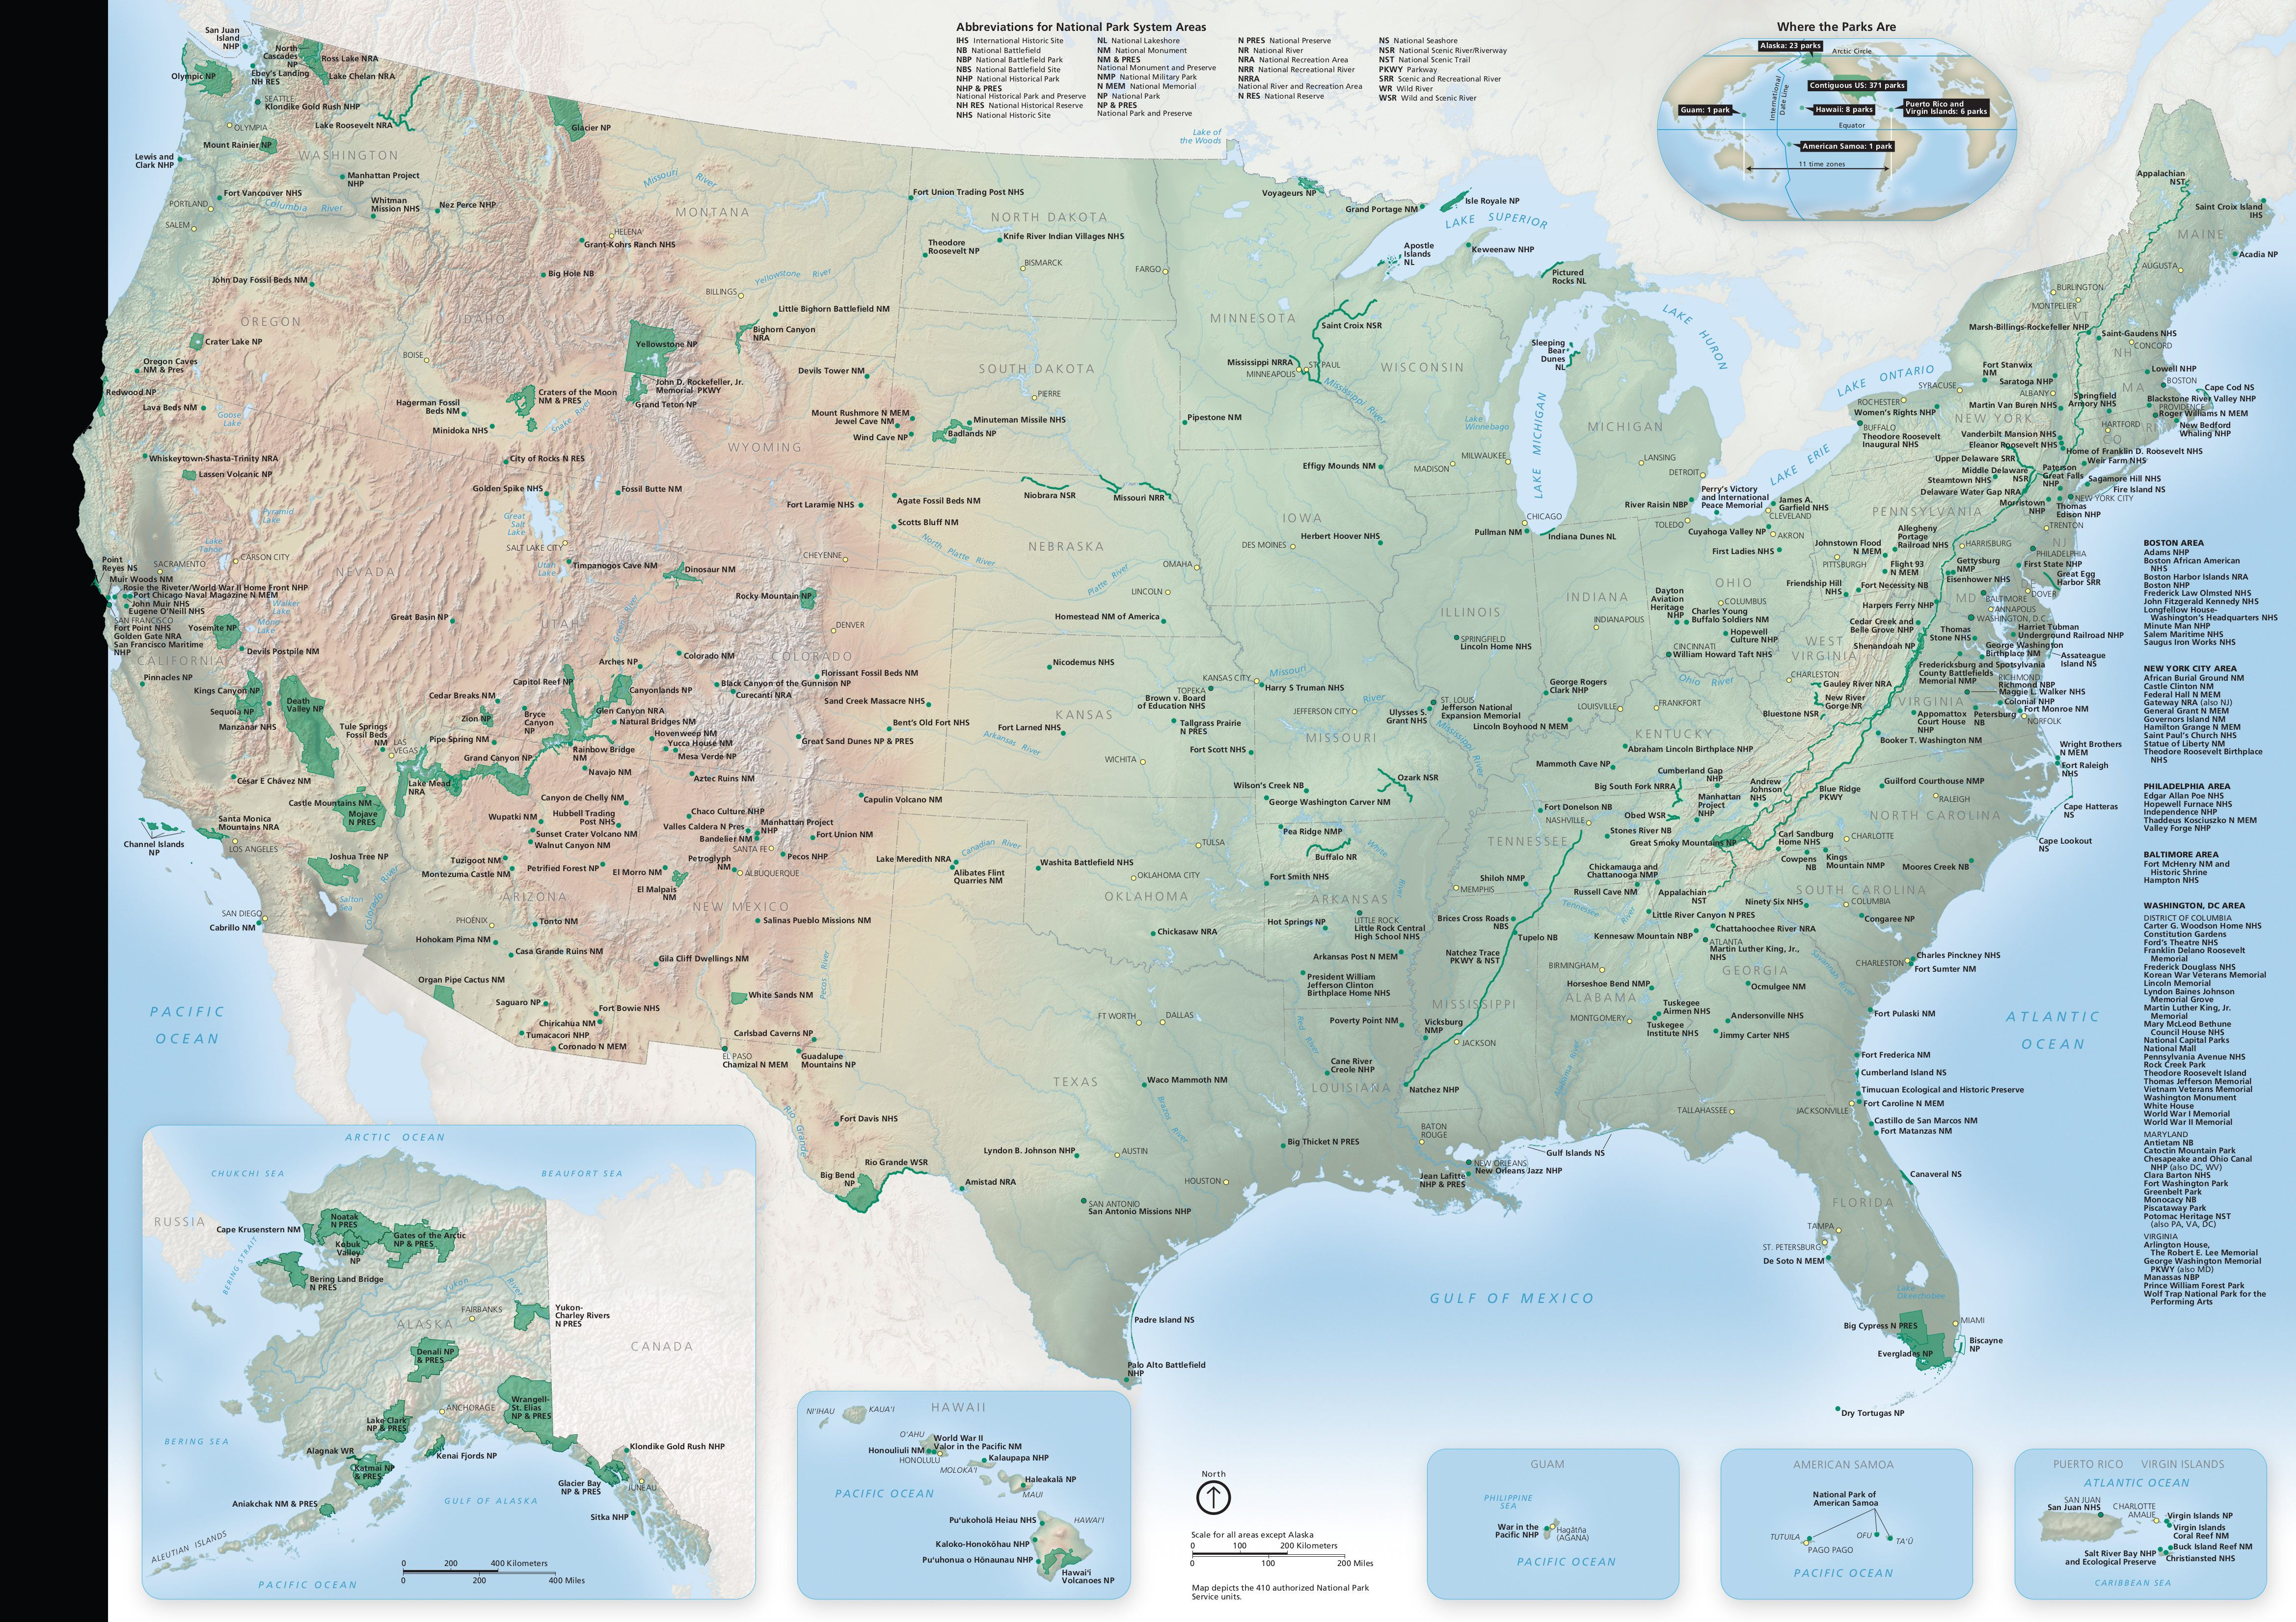 Digitized map of every state park in